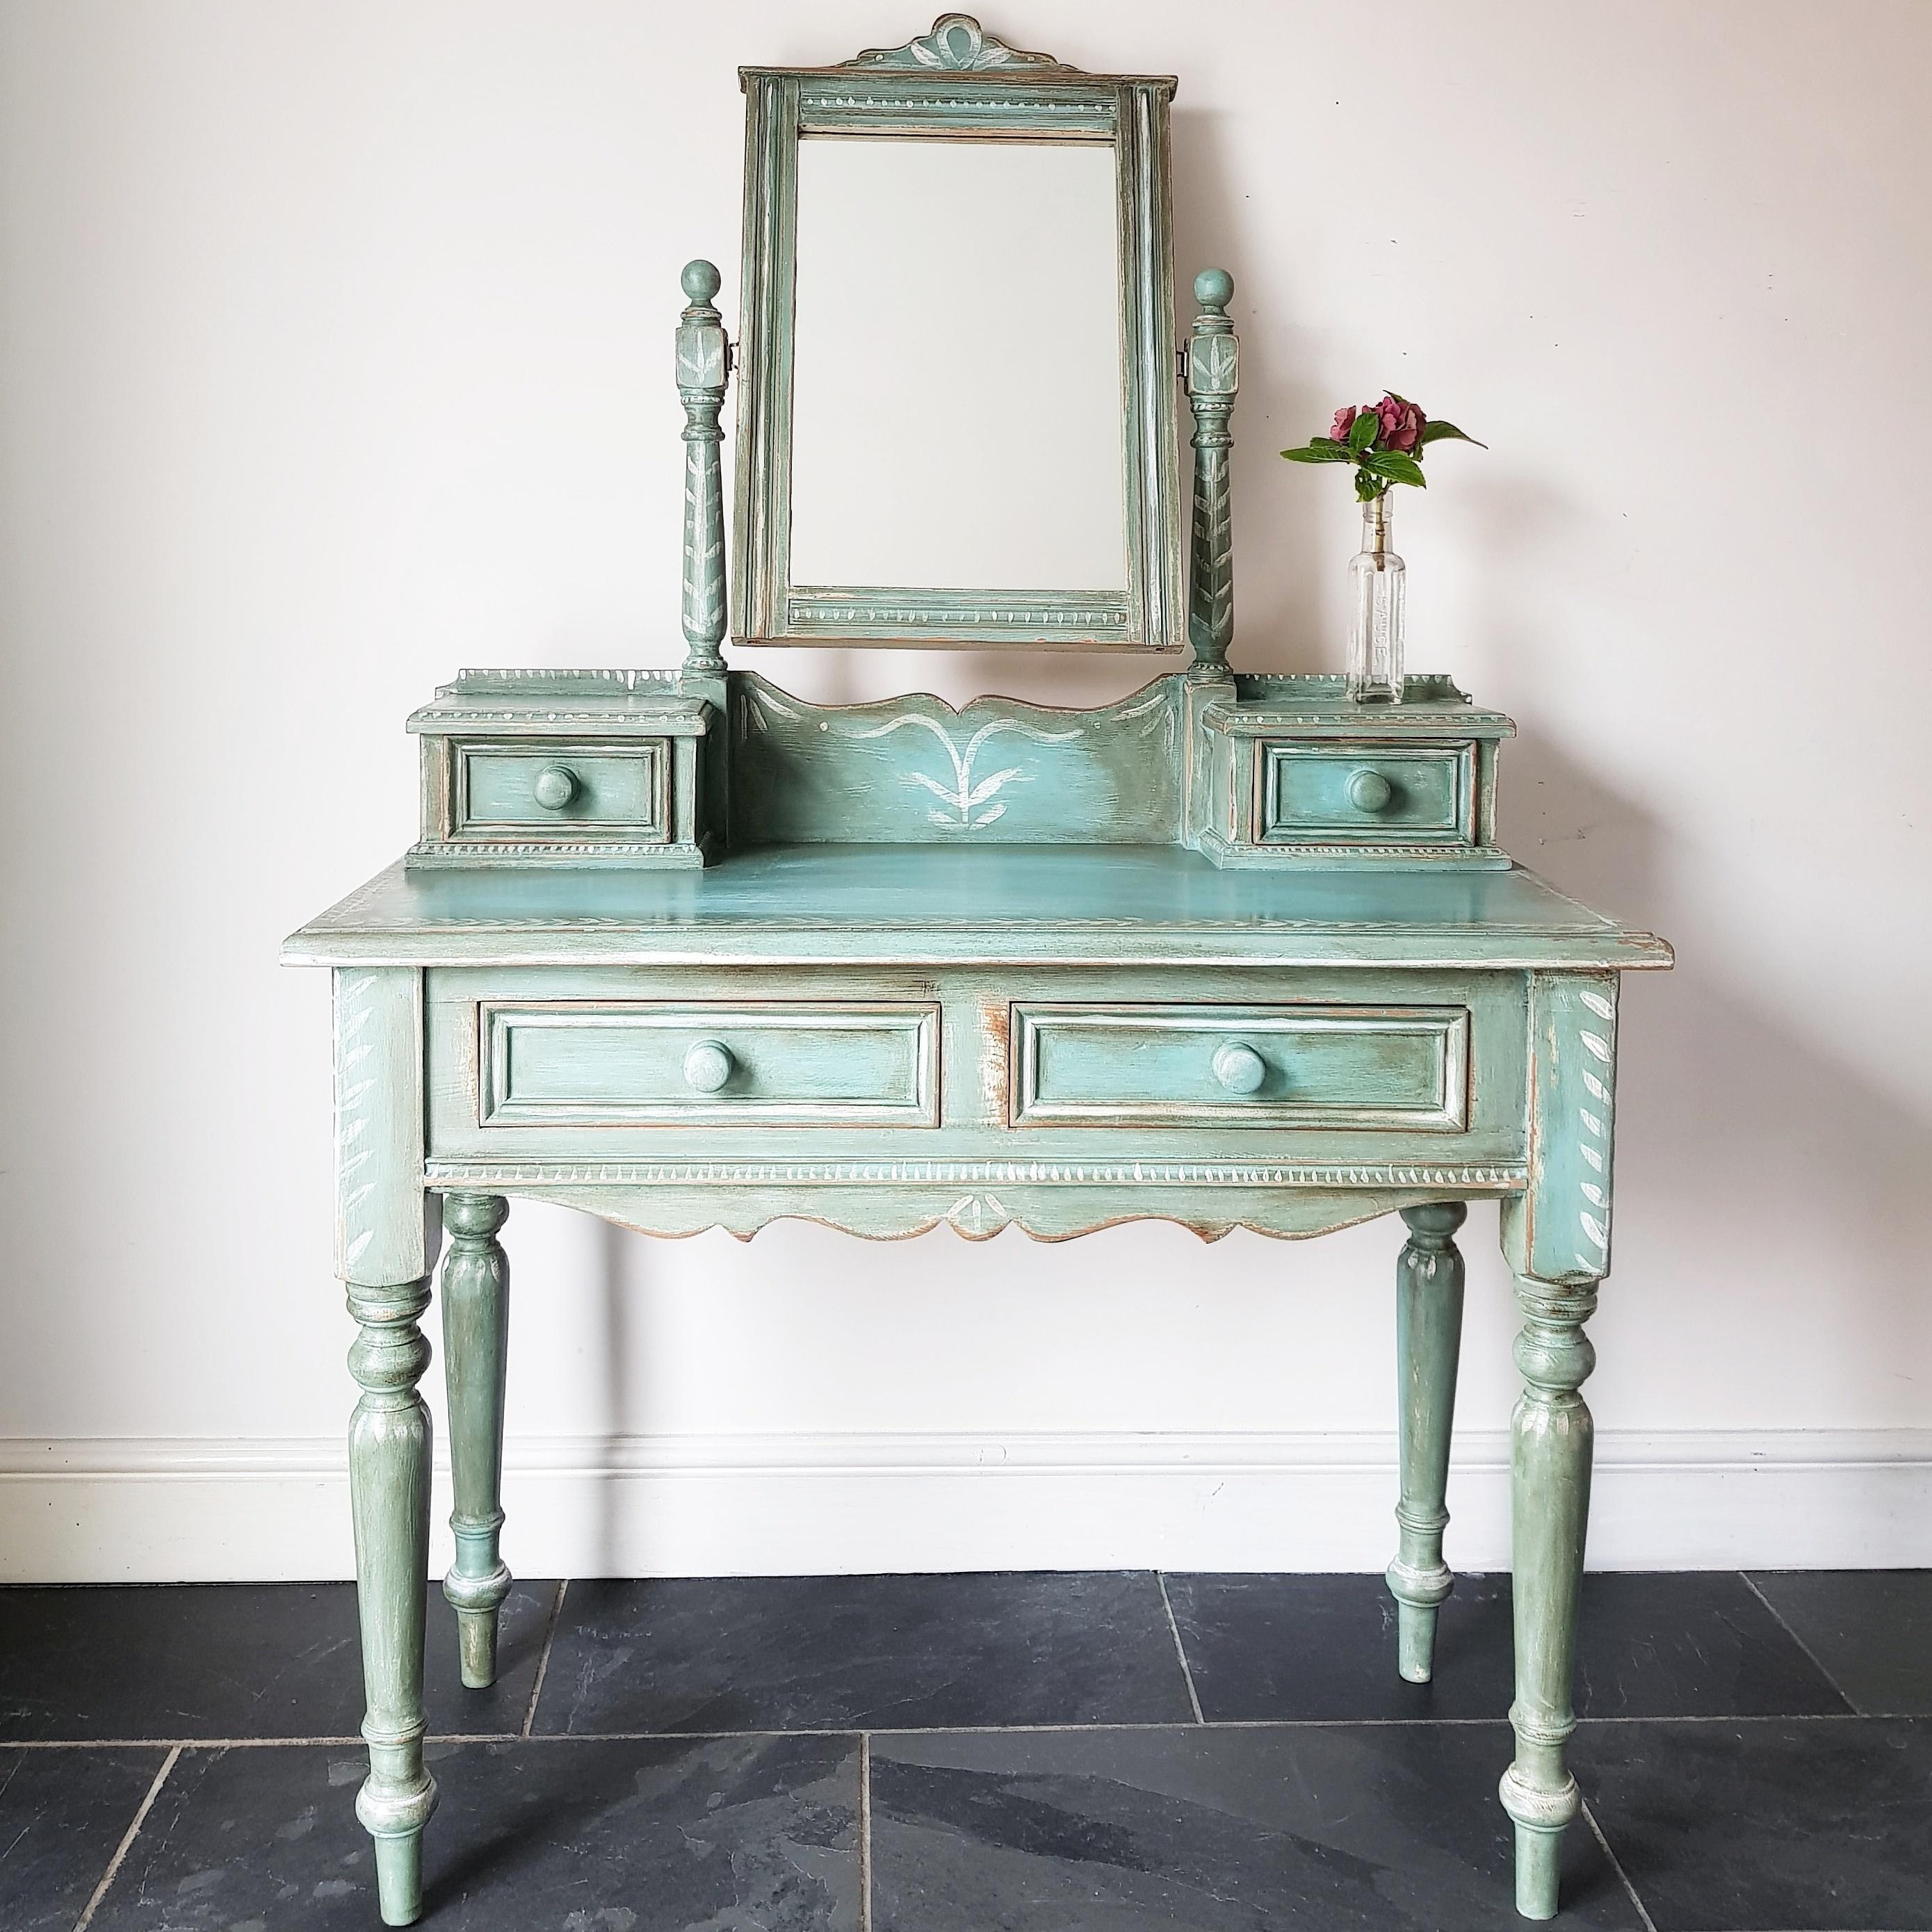 sale retailer 139c7 e0145 Farmhouse Pine Handpainted Upcycled Turquoise Boho Rustic Dressing Table &  Mirror